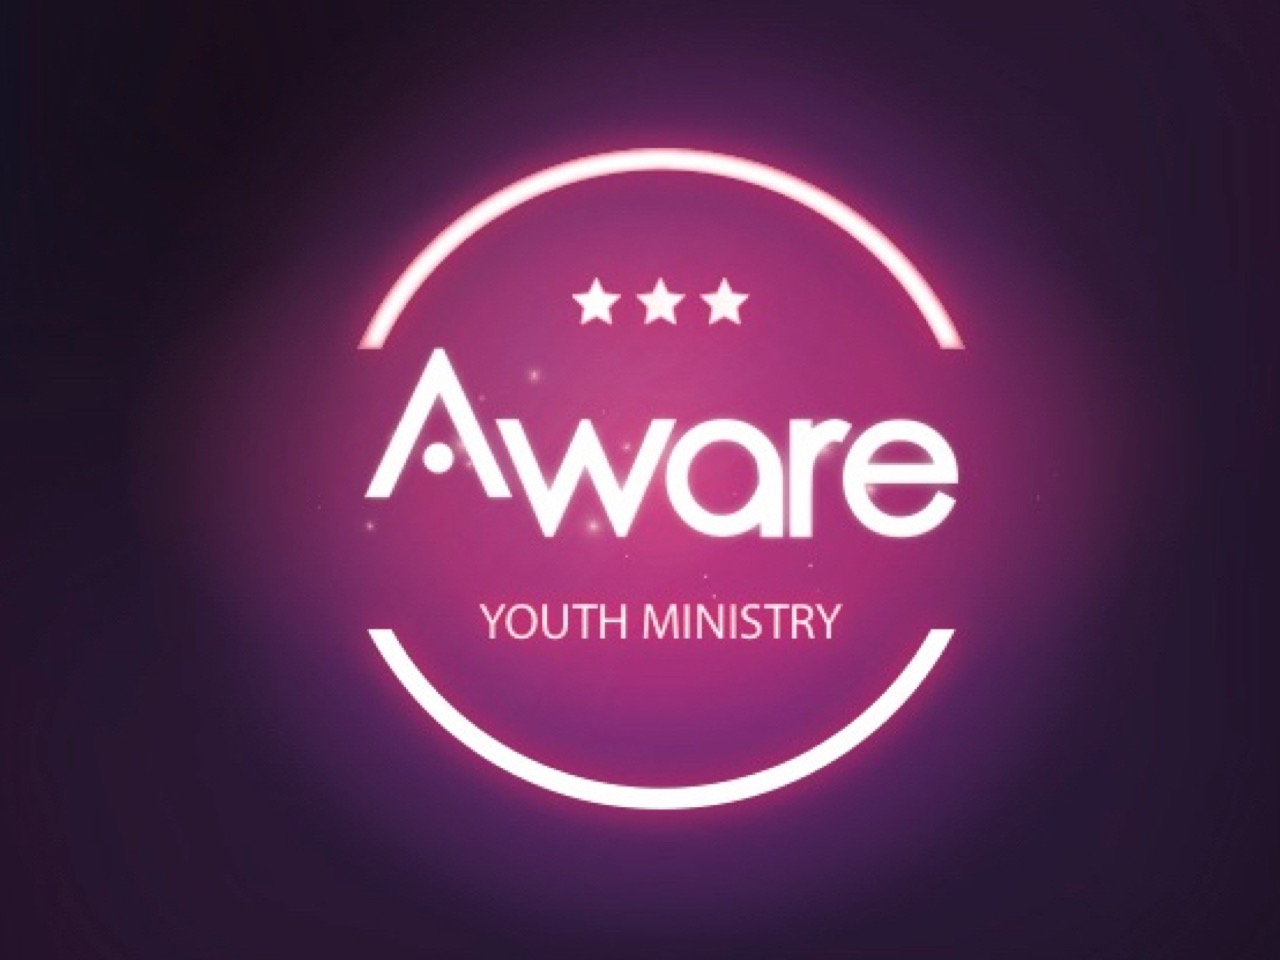 Aware Youth